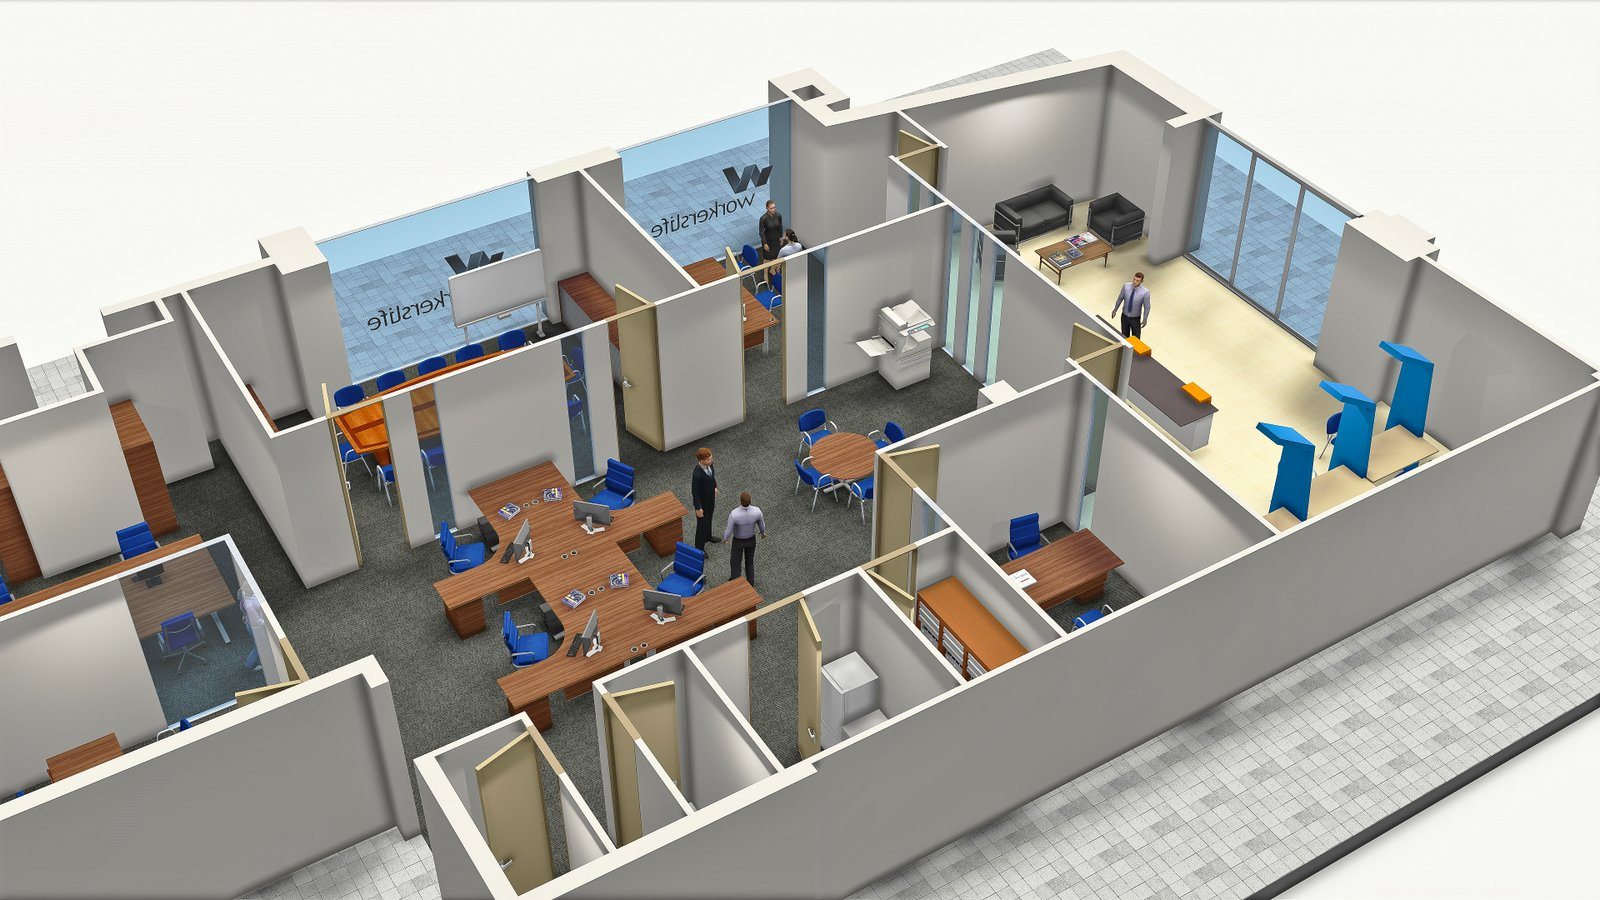 Office Top View   3D Models Architecture   Nelspruit and White River    Mpumalanga. 3D Modelling and Design   Infinity Focus